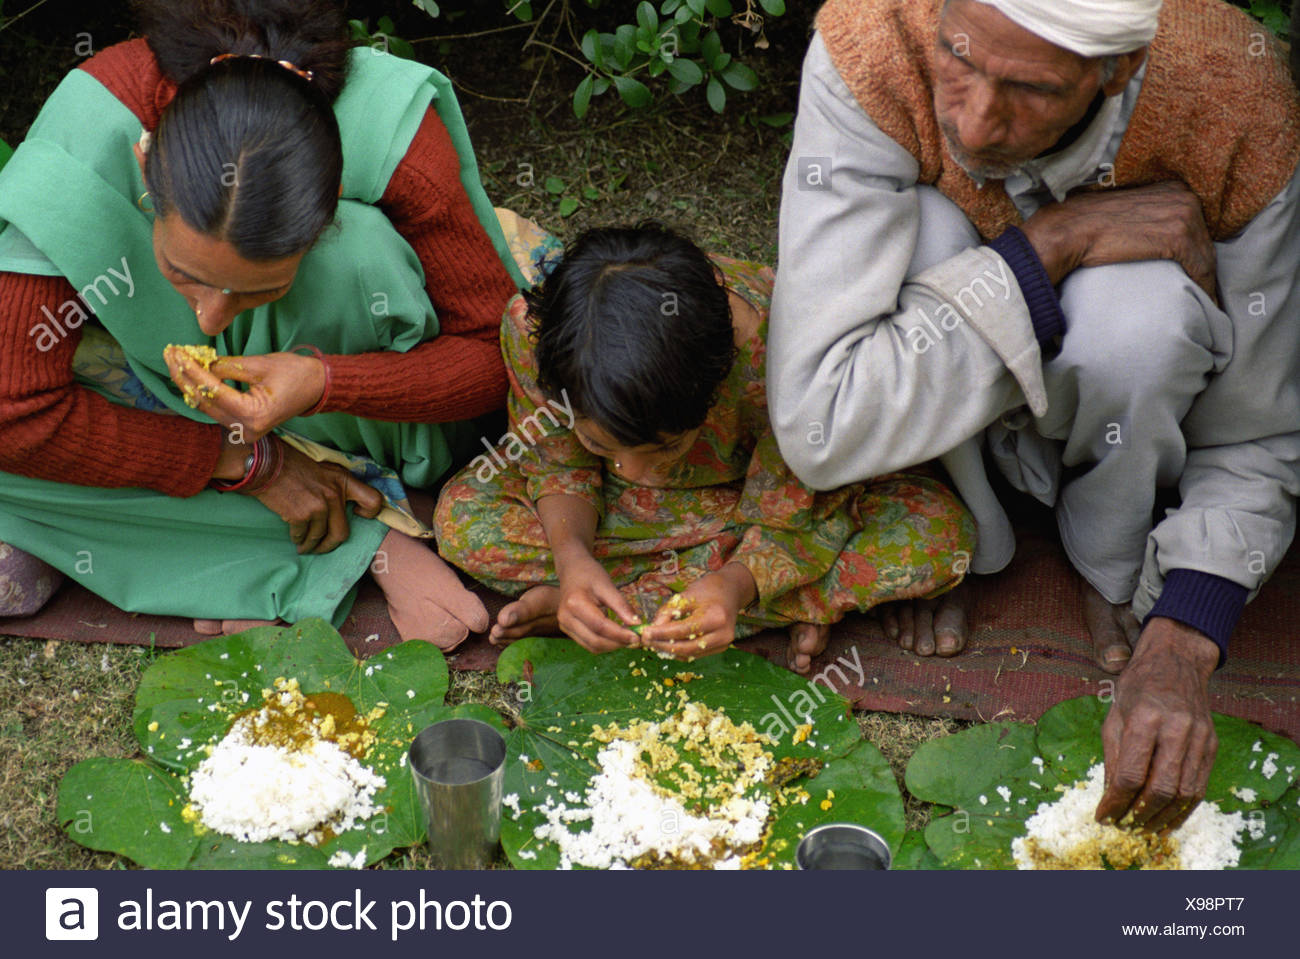 Food offering - Stock Image